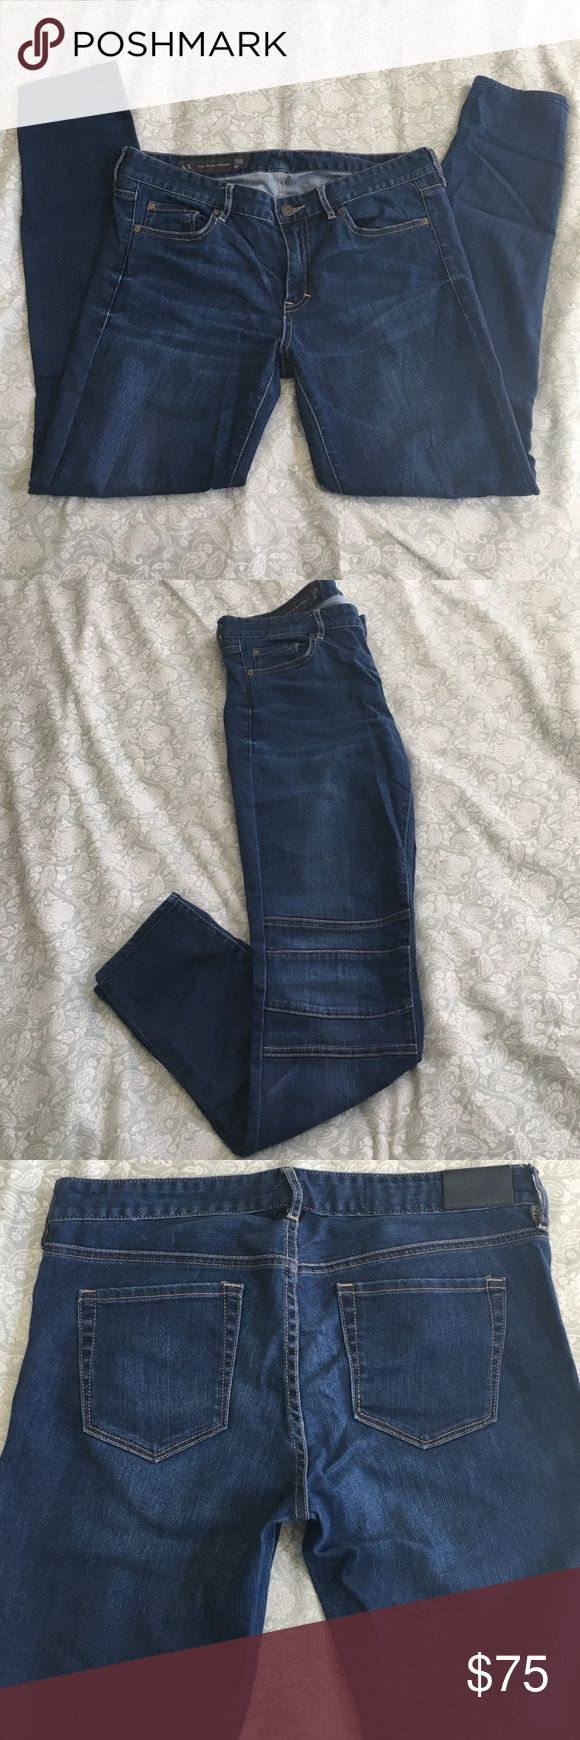 ARMANI EXCHANGE legging jean It's in perfect condition. J22 Legging/ size 31. 94% cotton. 5% polyester. 1% spandex. * It is characteristic of this fabric to transfer color. Avoid contact with light color fabric but other than that it's a nice fitted jeans. ✨Come from clean/smoke free home. Serious inquiries only and NO trade. Feel free to make an offer.✨ Armani Exchange Jeans Skinny